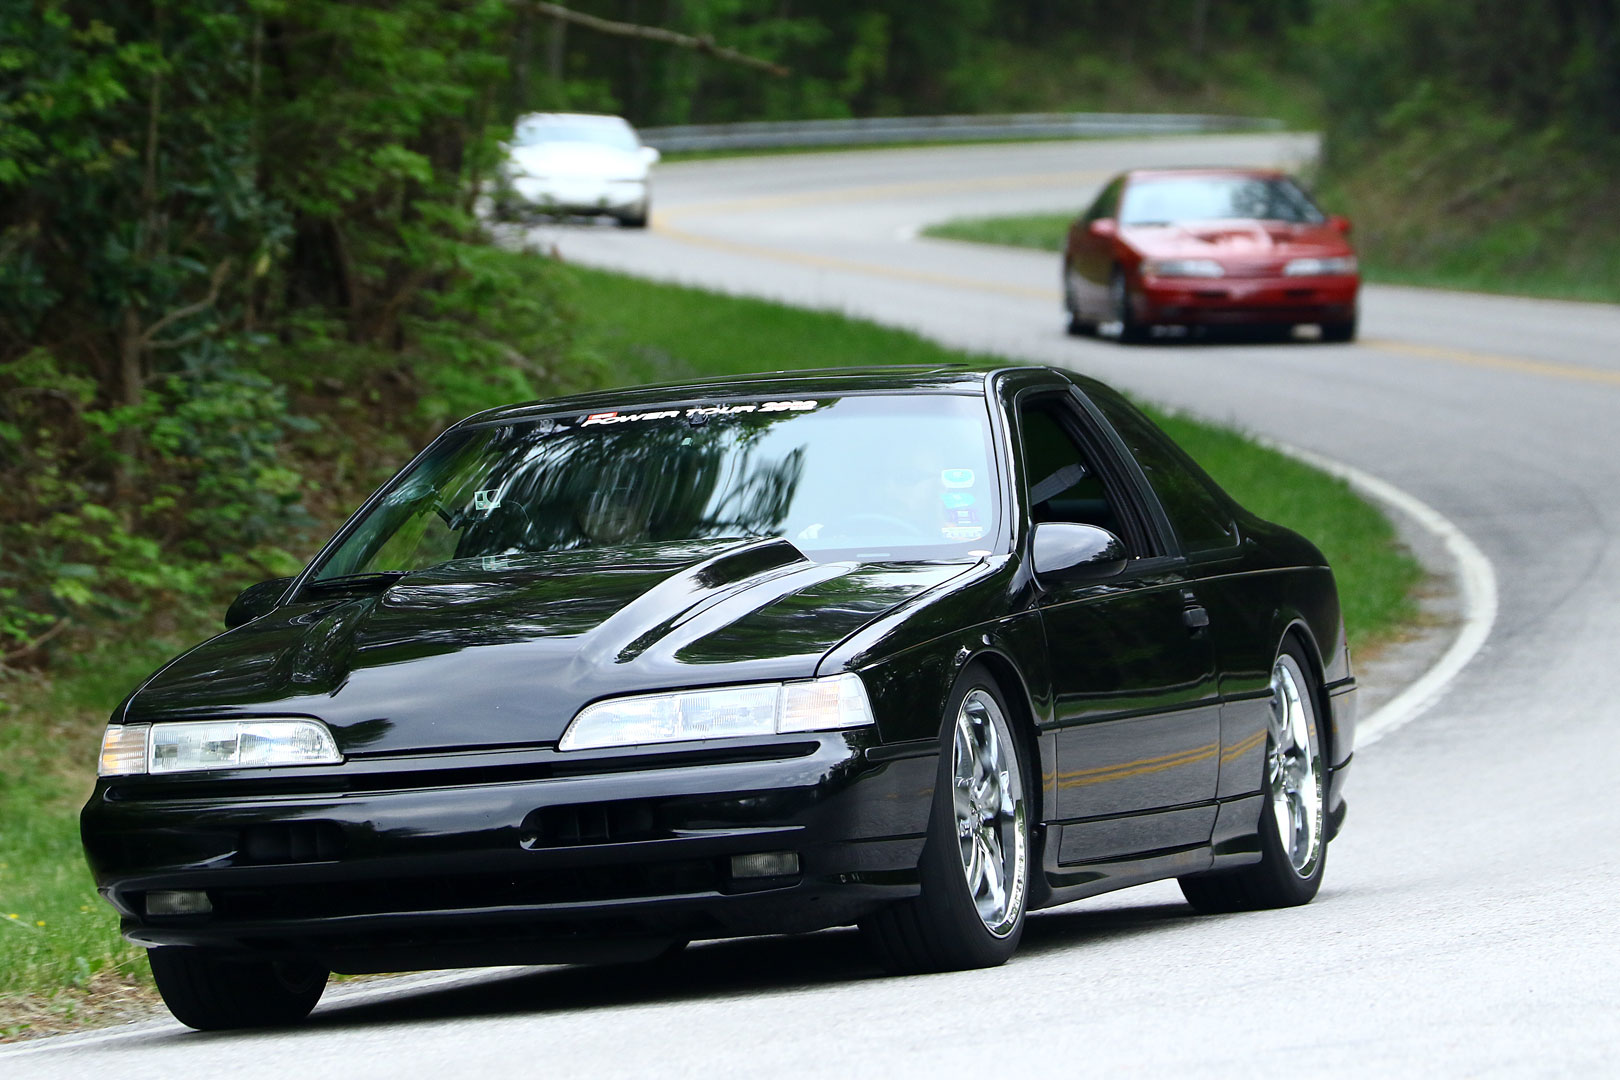 Kurt Kreisz drove his highly modified 1992 T-Bird SC on Tennessee's Tail of the Dragon, with his family aboard.